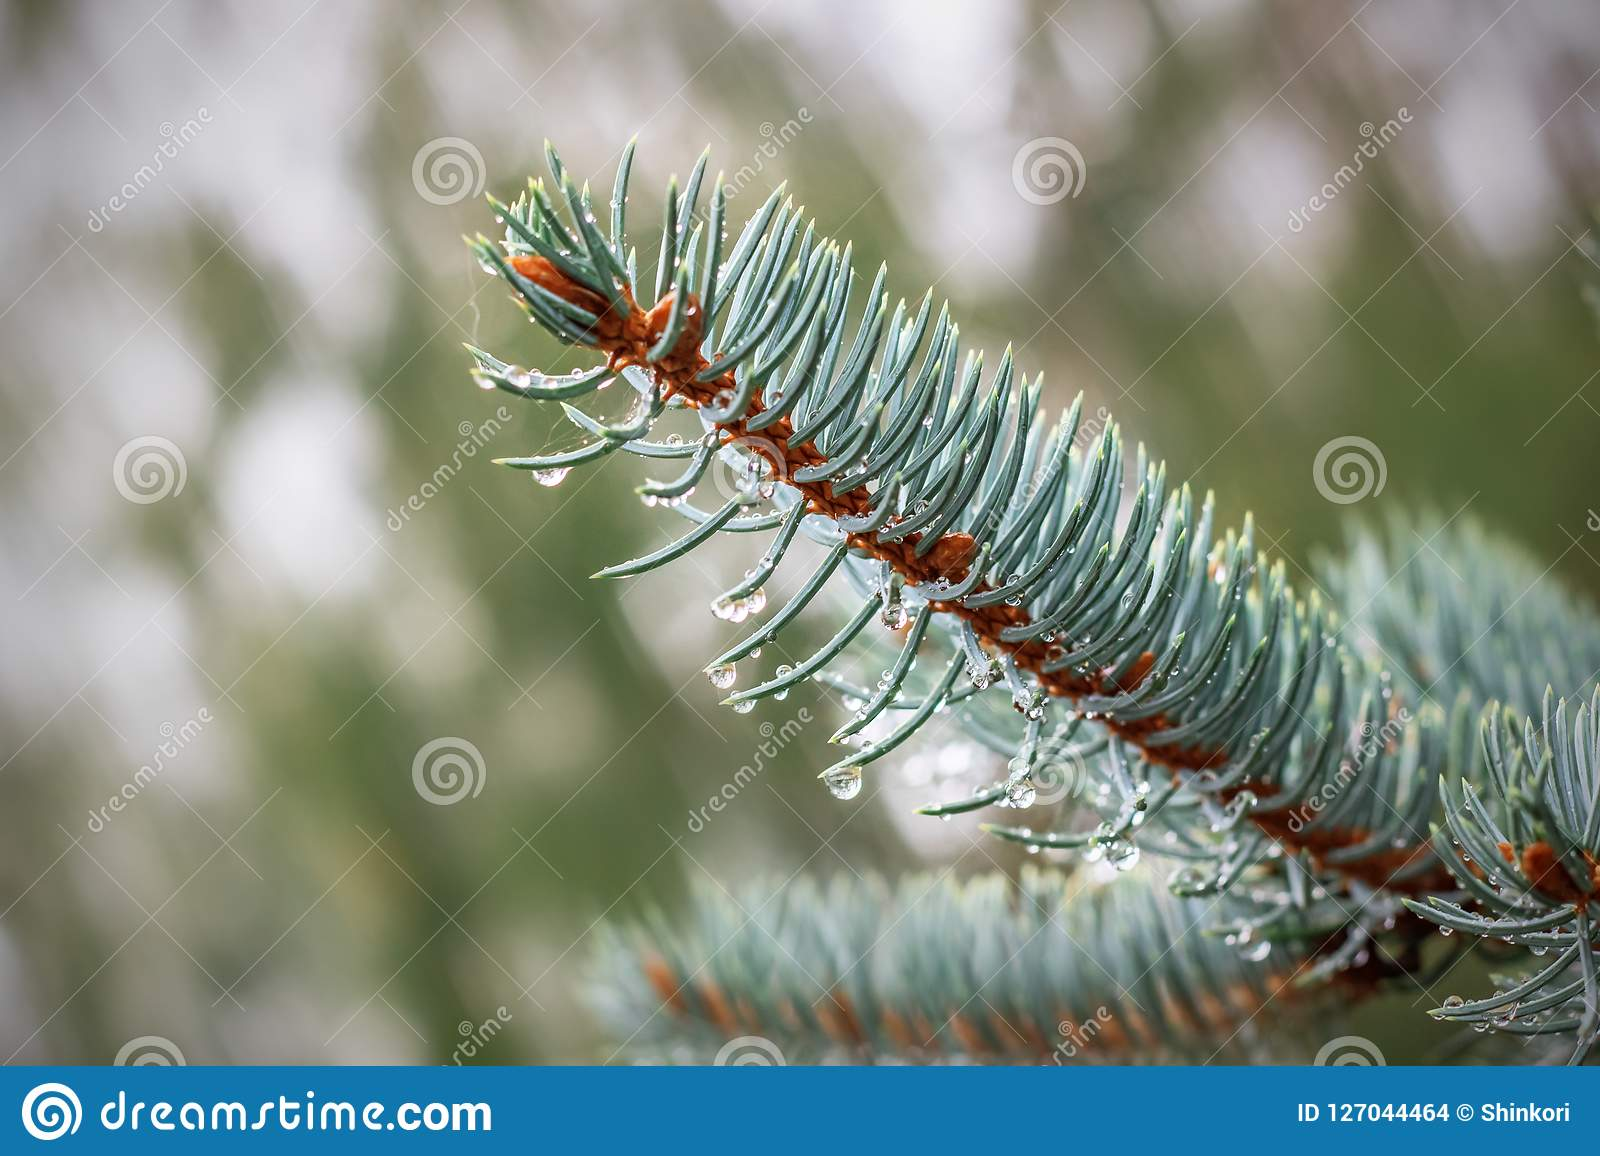 Raindrops on a branch of blue spruce